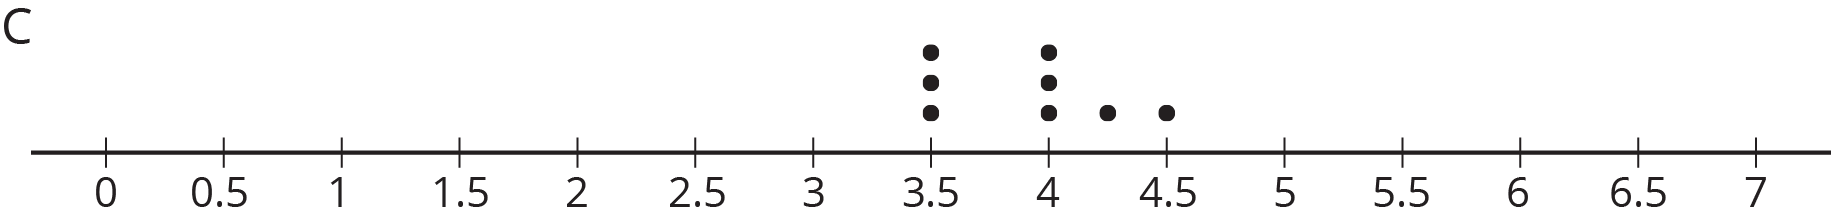 "A dot plot labeled ""C."" The numbers 0 through 7, in increments of 0 point 5, are indicated. The data are as follows:  3 point 5, 3 dots. 4, 3 dots. 4 point 25, 1 dot. 4 point 5, 1 dot."